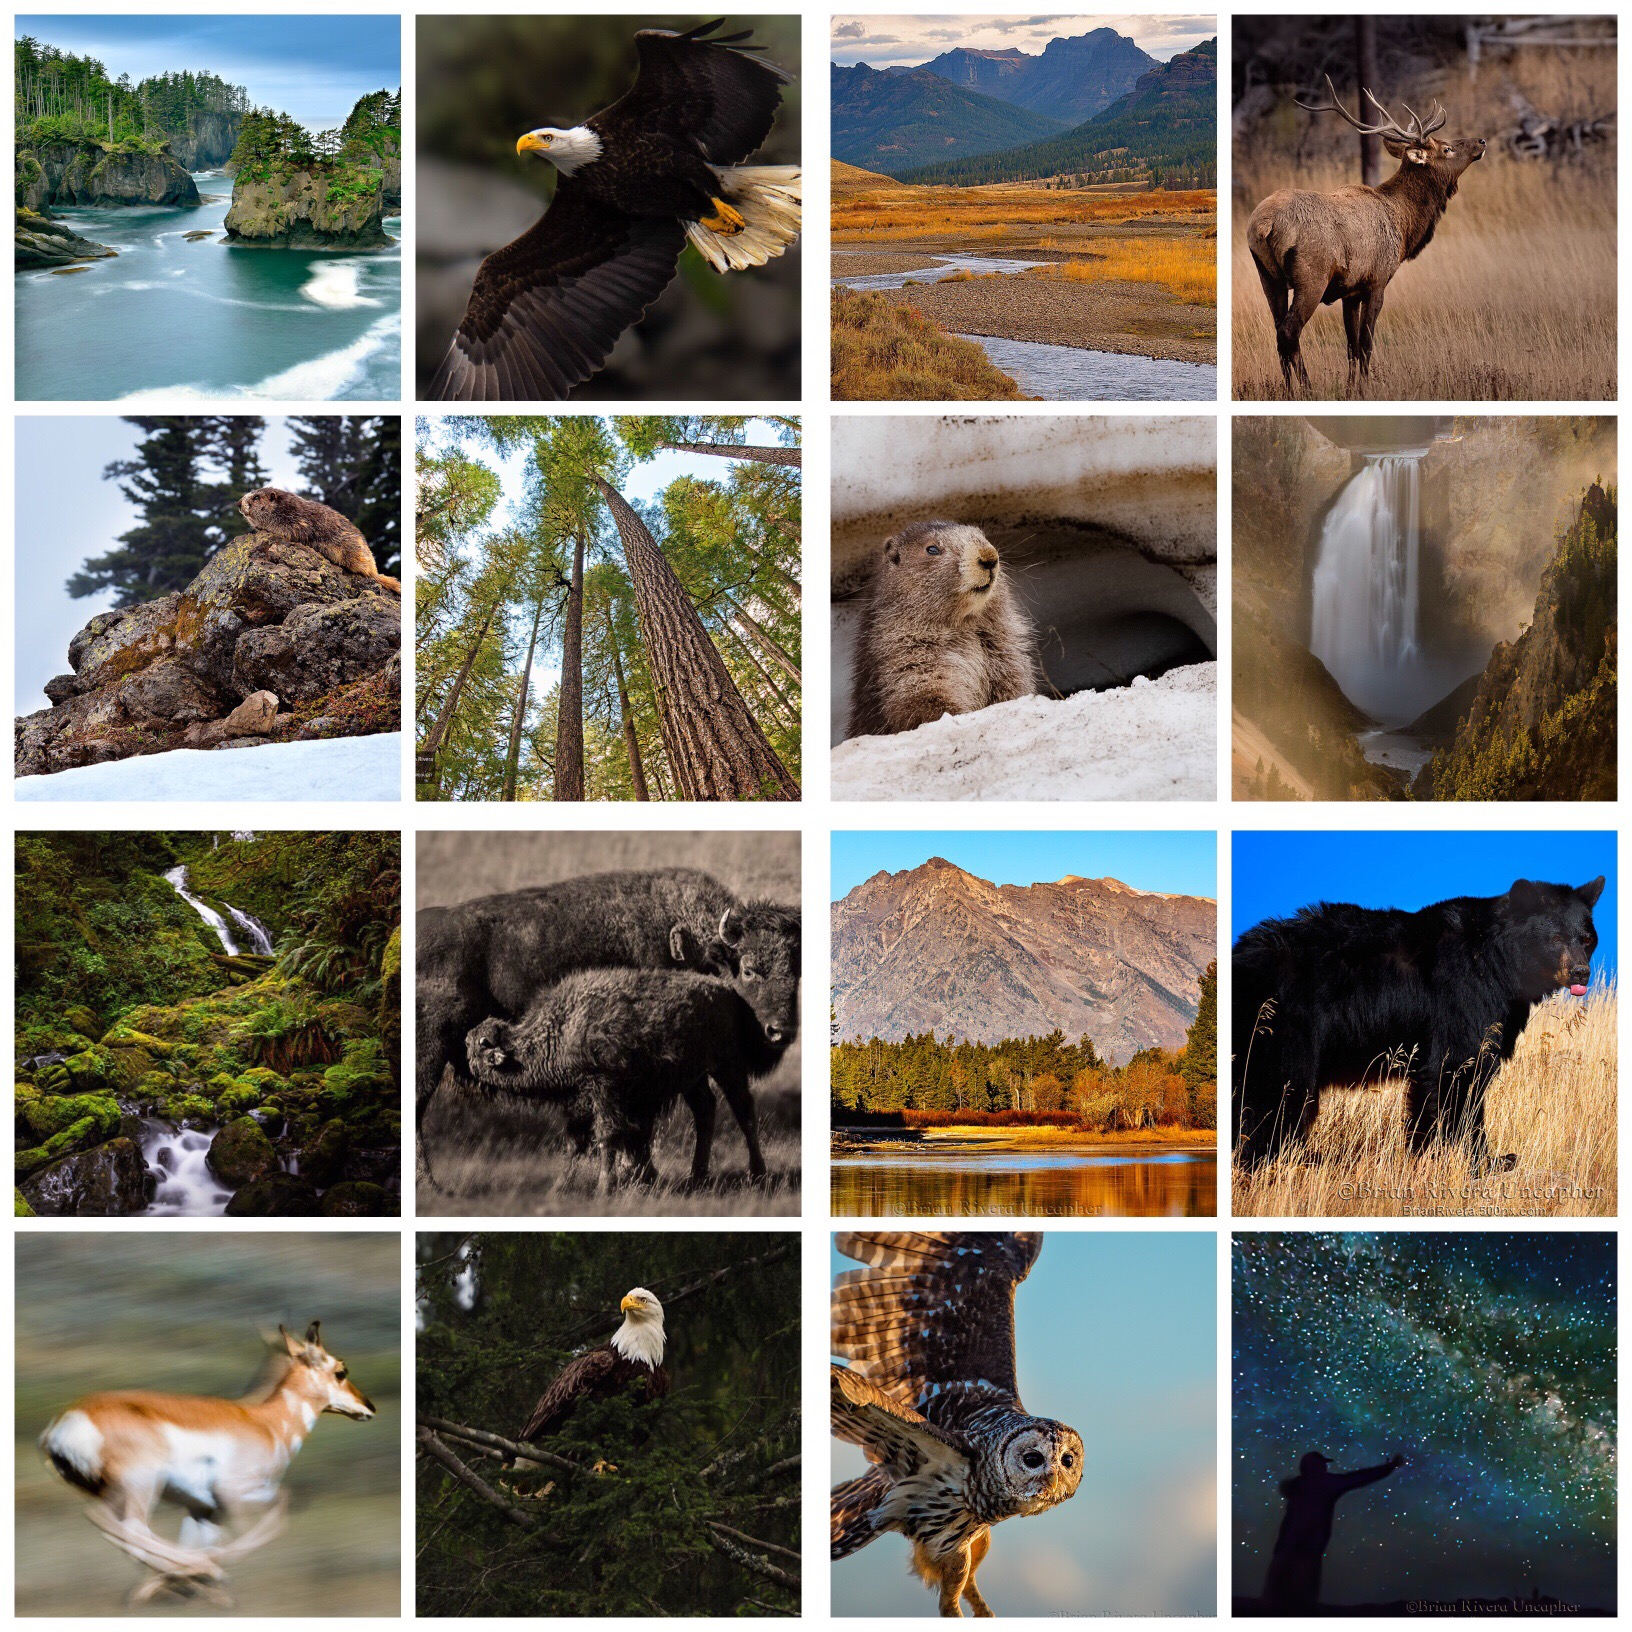 Top Row:   Olympic National Park, Yellowstone National Park, Rocky Mountain National Park;   Second Row:   Olympic National Park, Washington State Orcas' Island Park, Yellowstone National Park;   Third Row:    Olympic National Park, Yellowstone National Park, Grand Tetons National Park;   Bottom Row:   Grand Tetons National Park; Olympic National Park; Everglades National Park, Acadia National Park.  © Brian Rivera Uncapher